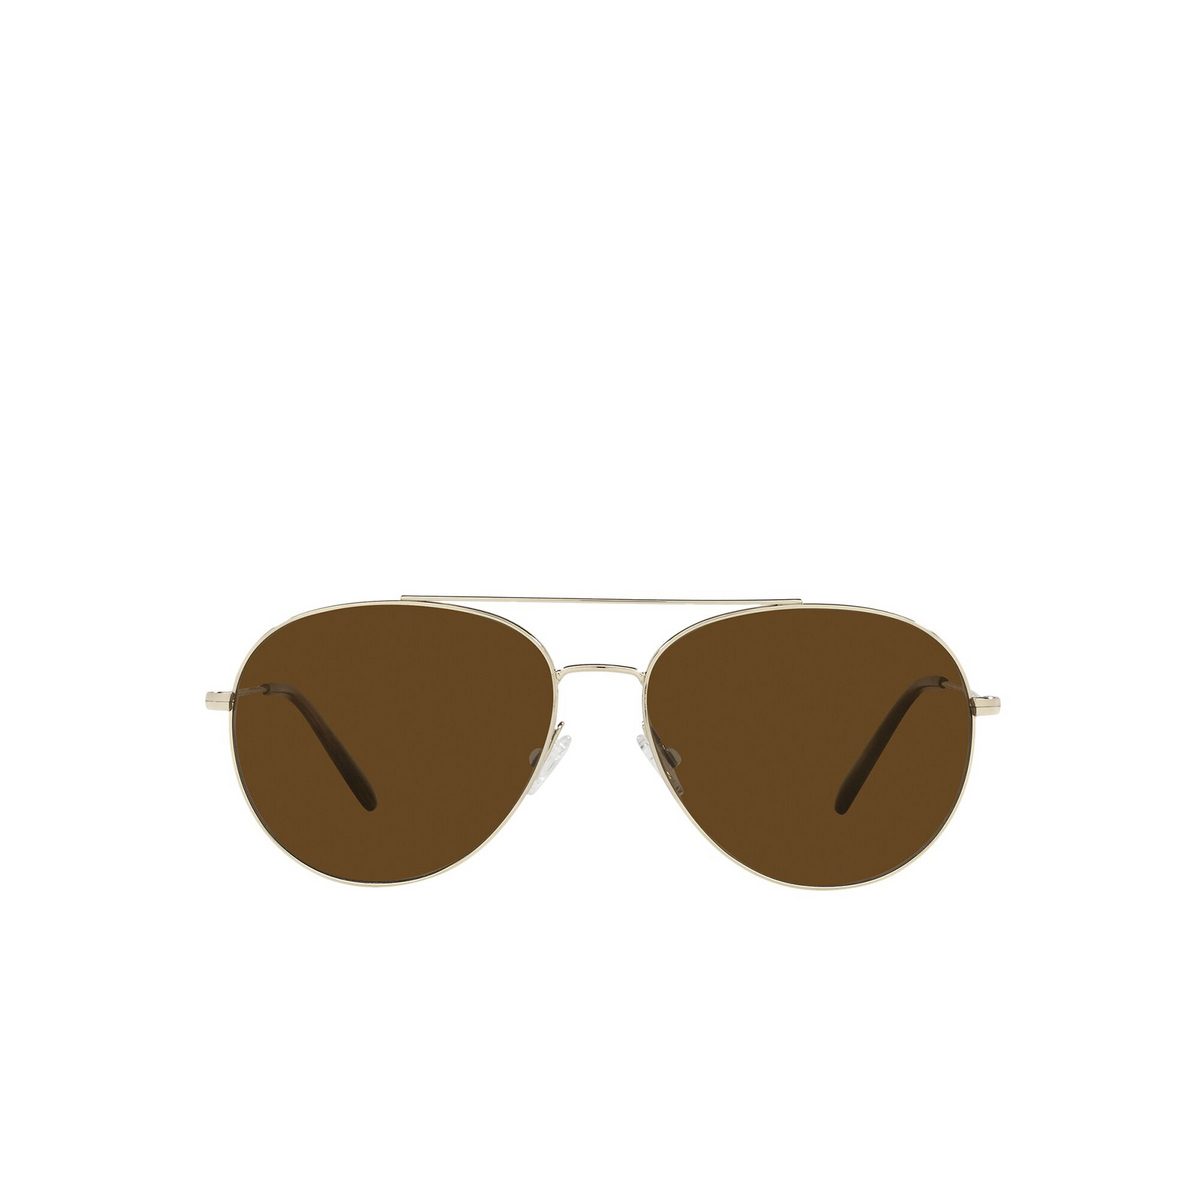 Oliver Peoples® Aviator Sunglasses: Airdale OV1286S color Soft Gold 503557 - front view.